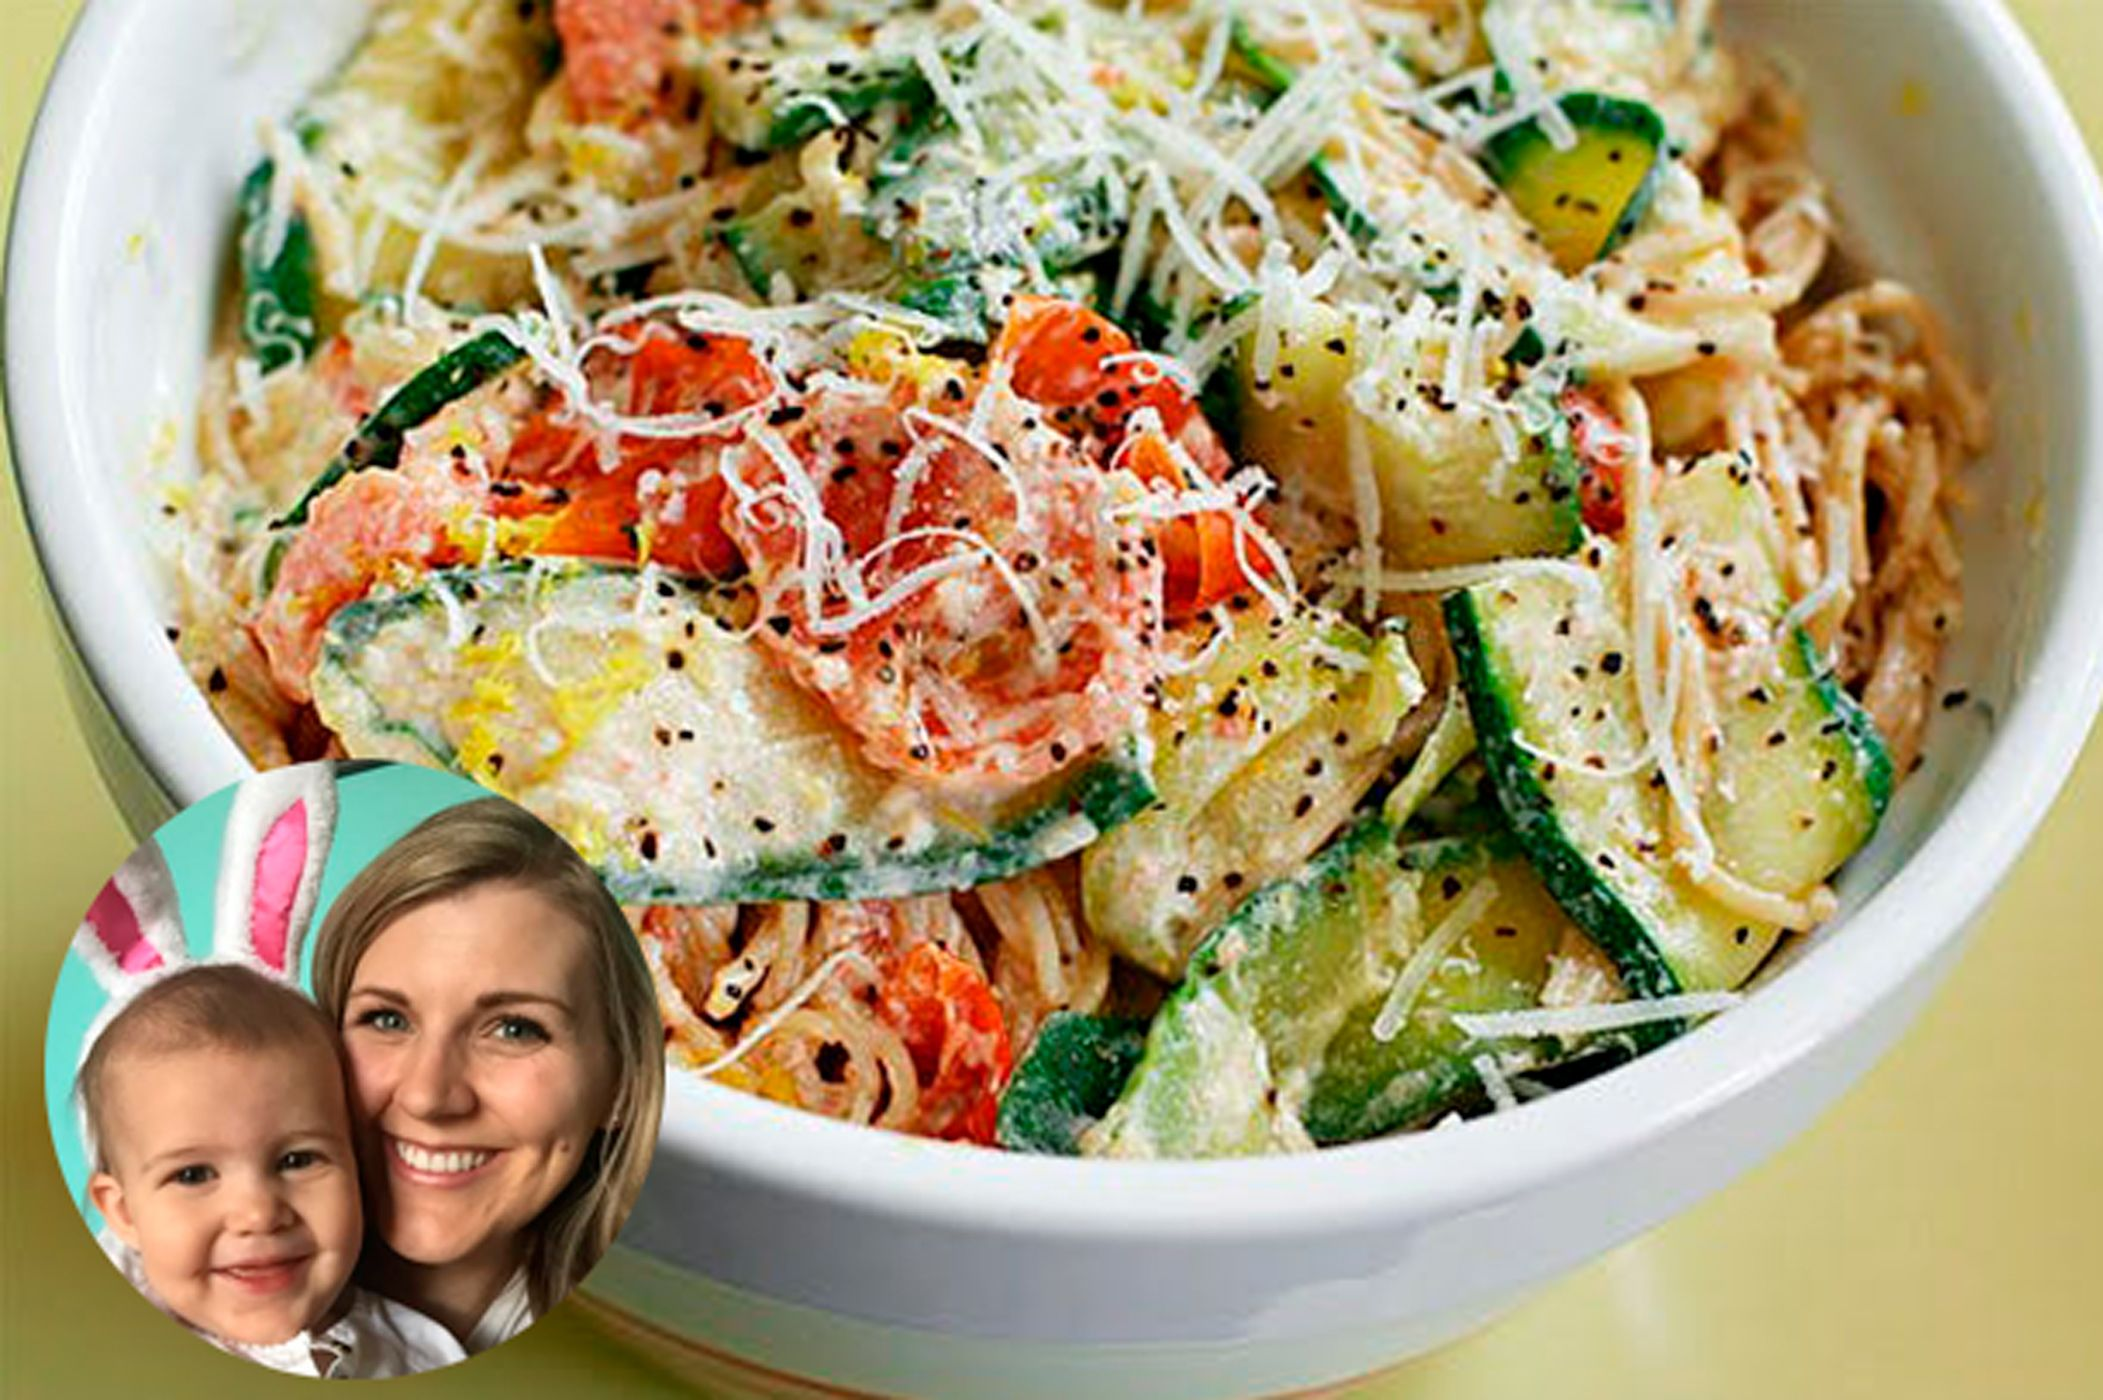 My Favorite Healthy Recipes: Anne from Salt Lake City ...